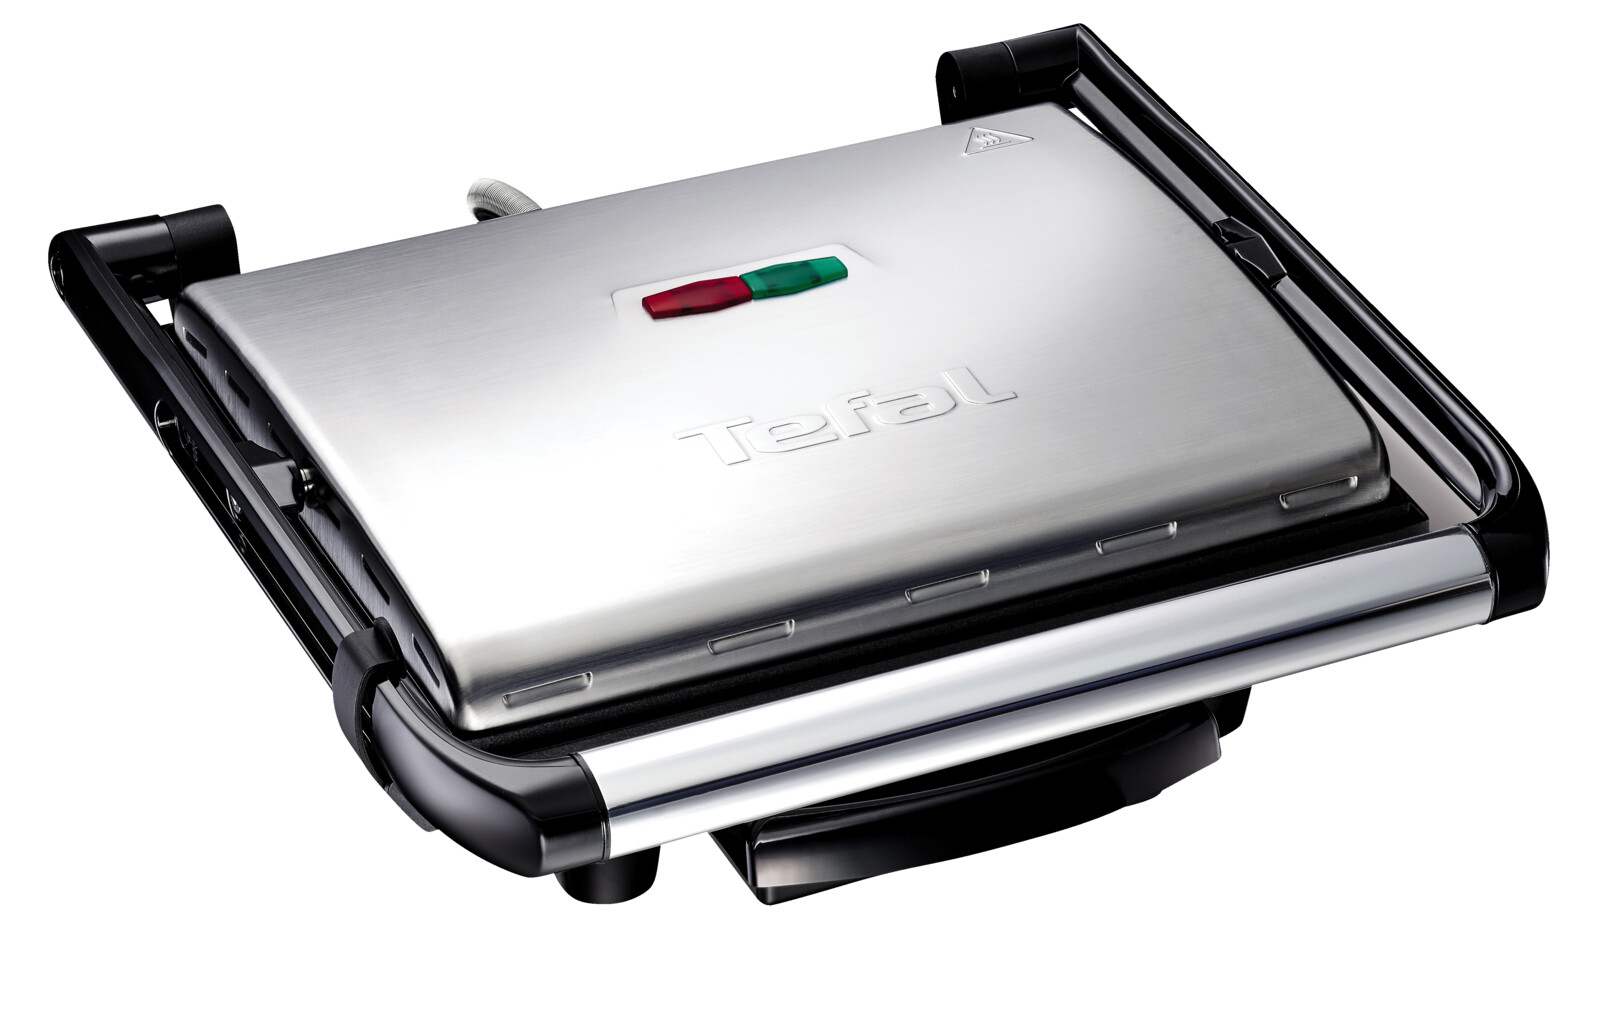 tefal gc241d inicio kontaktgrill 2000 watt ebay. Black Bedroom Furniture Sets. Home Design Ideas